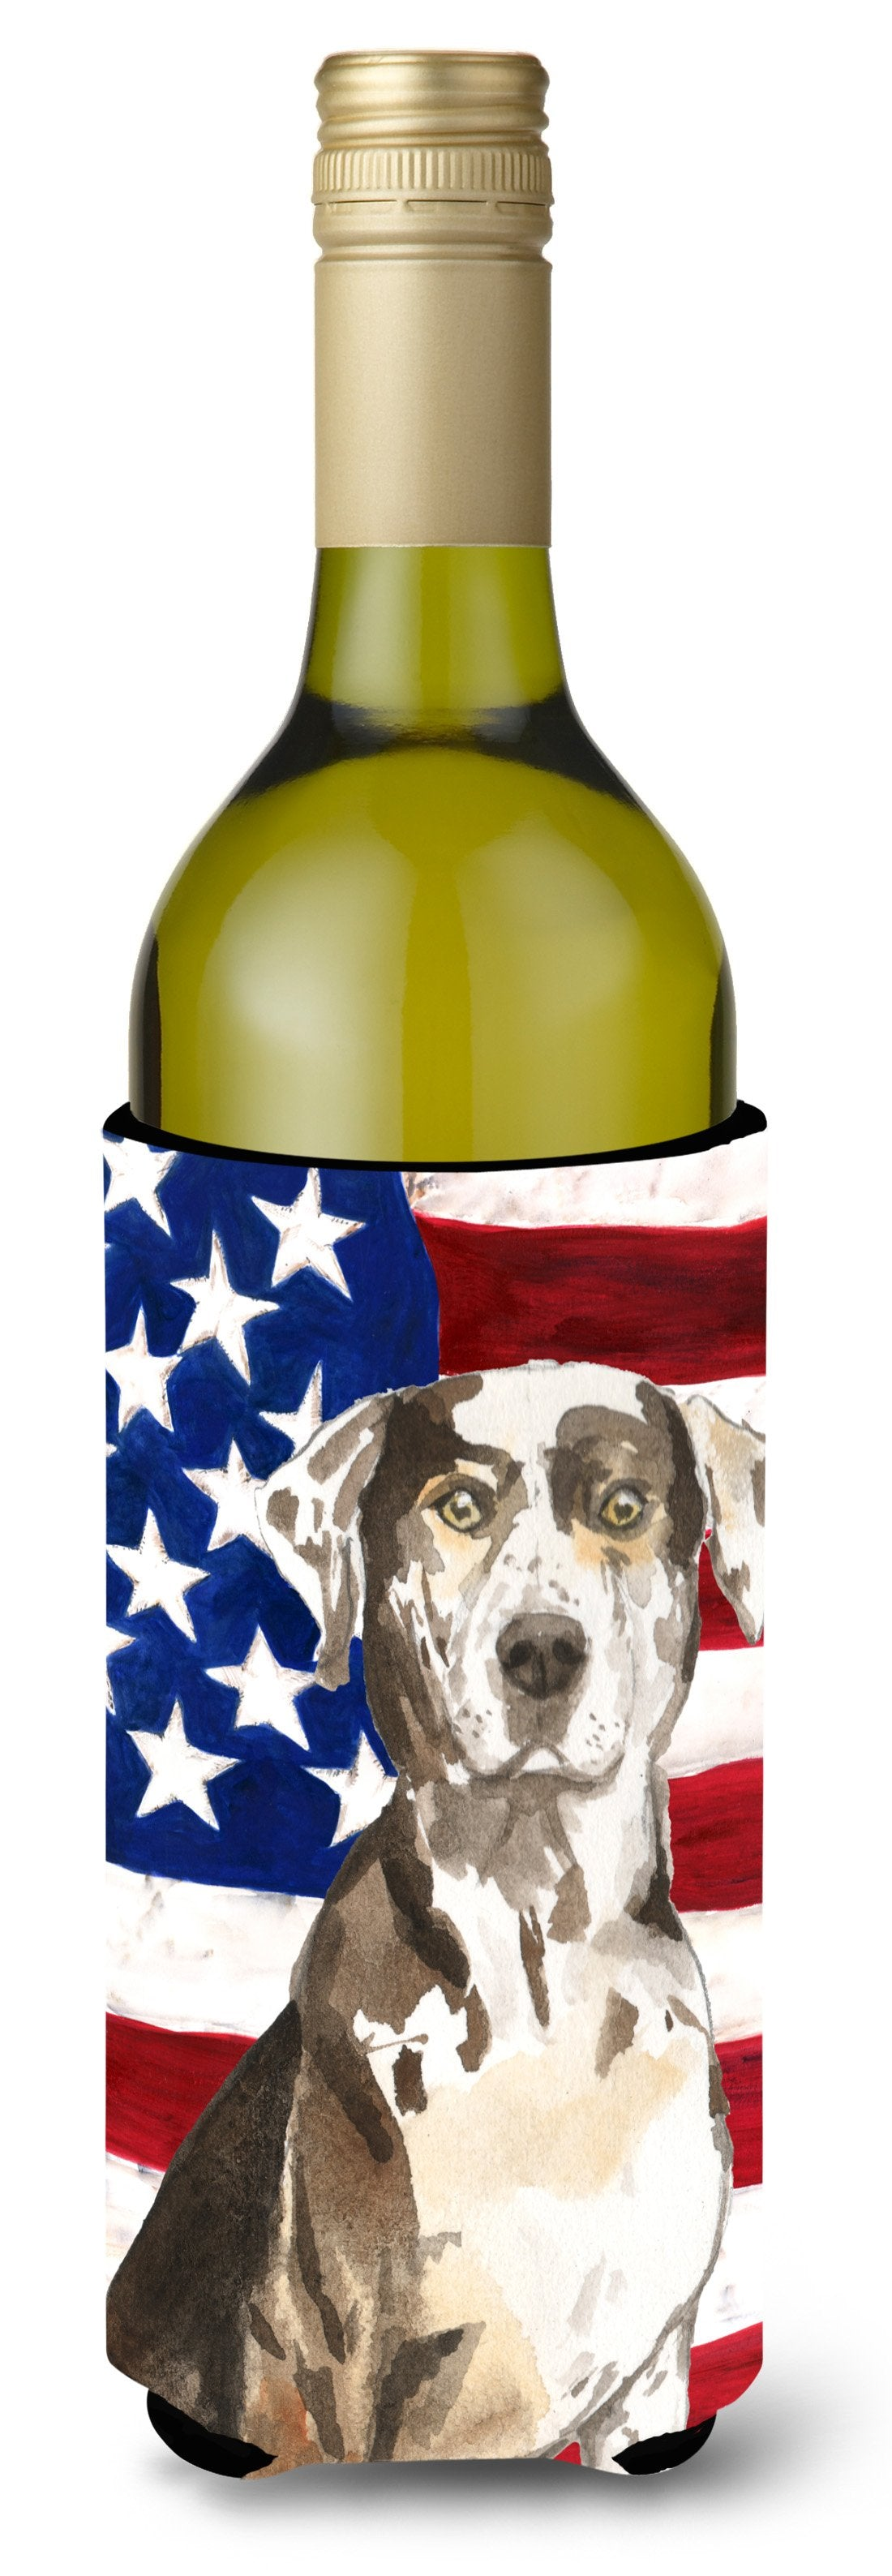 Patriotic USA Catahoula Leopard Dog Wine Bottle Beverge Insulator Hugger CK1734LITERK by Caroline's Treasures